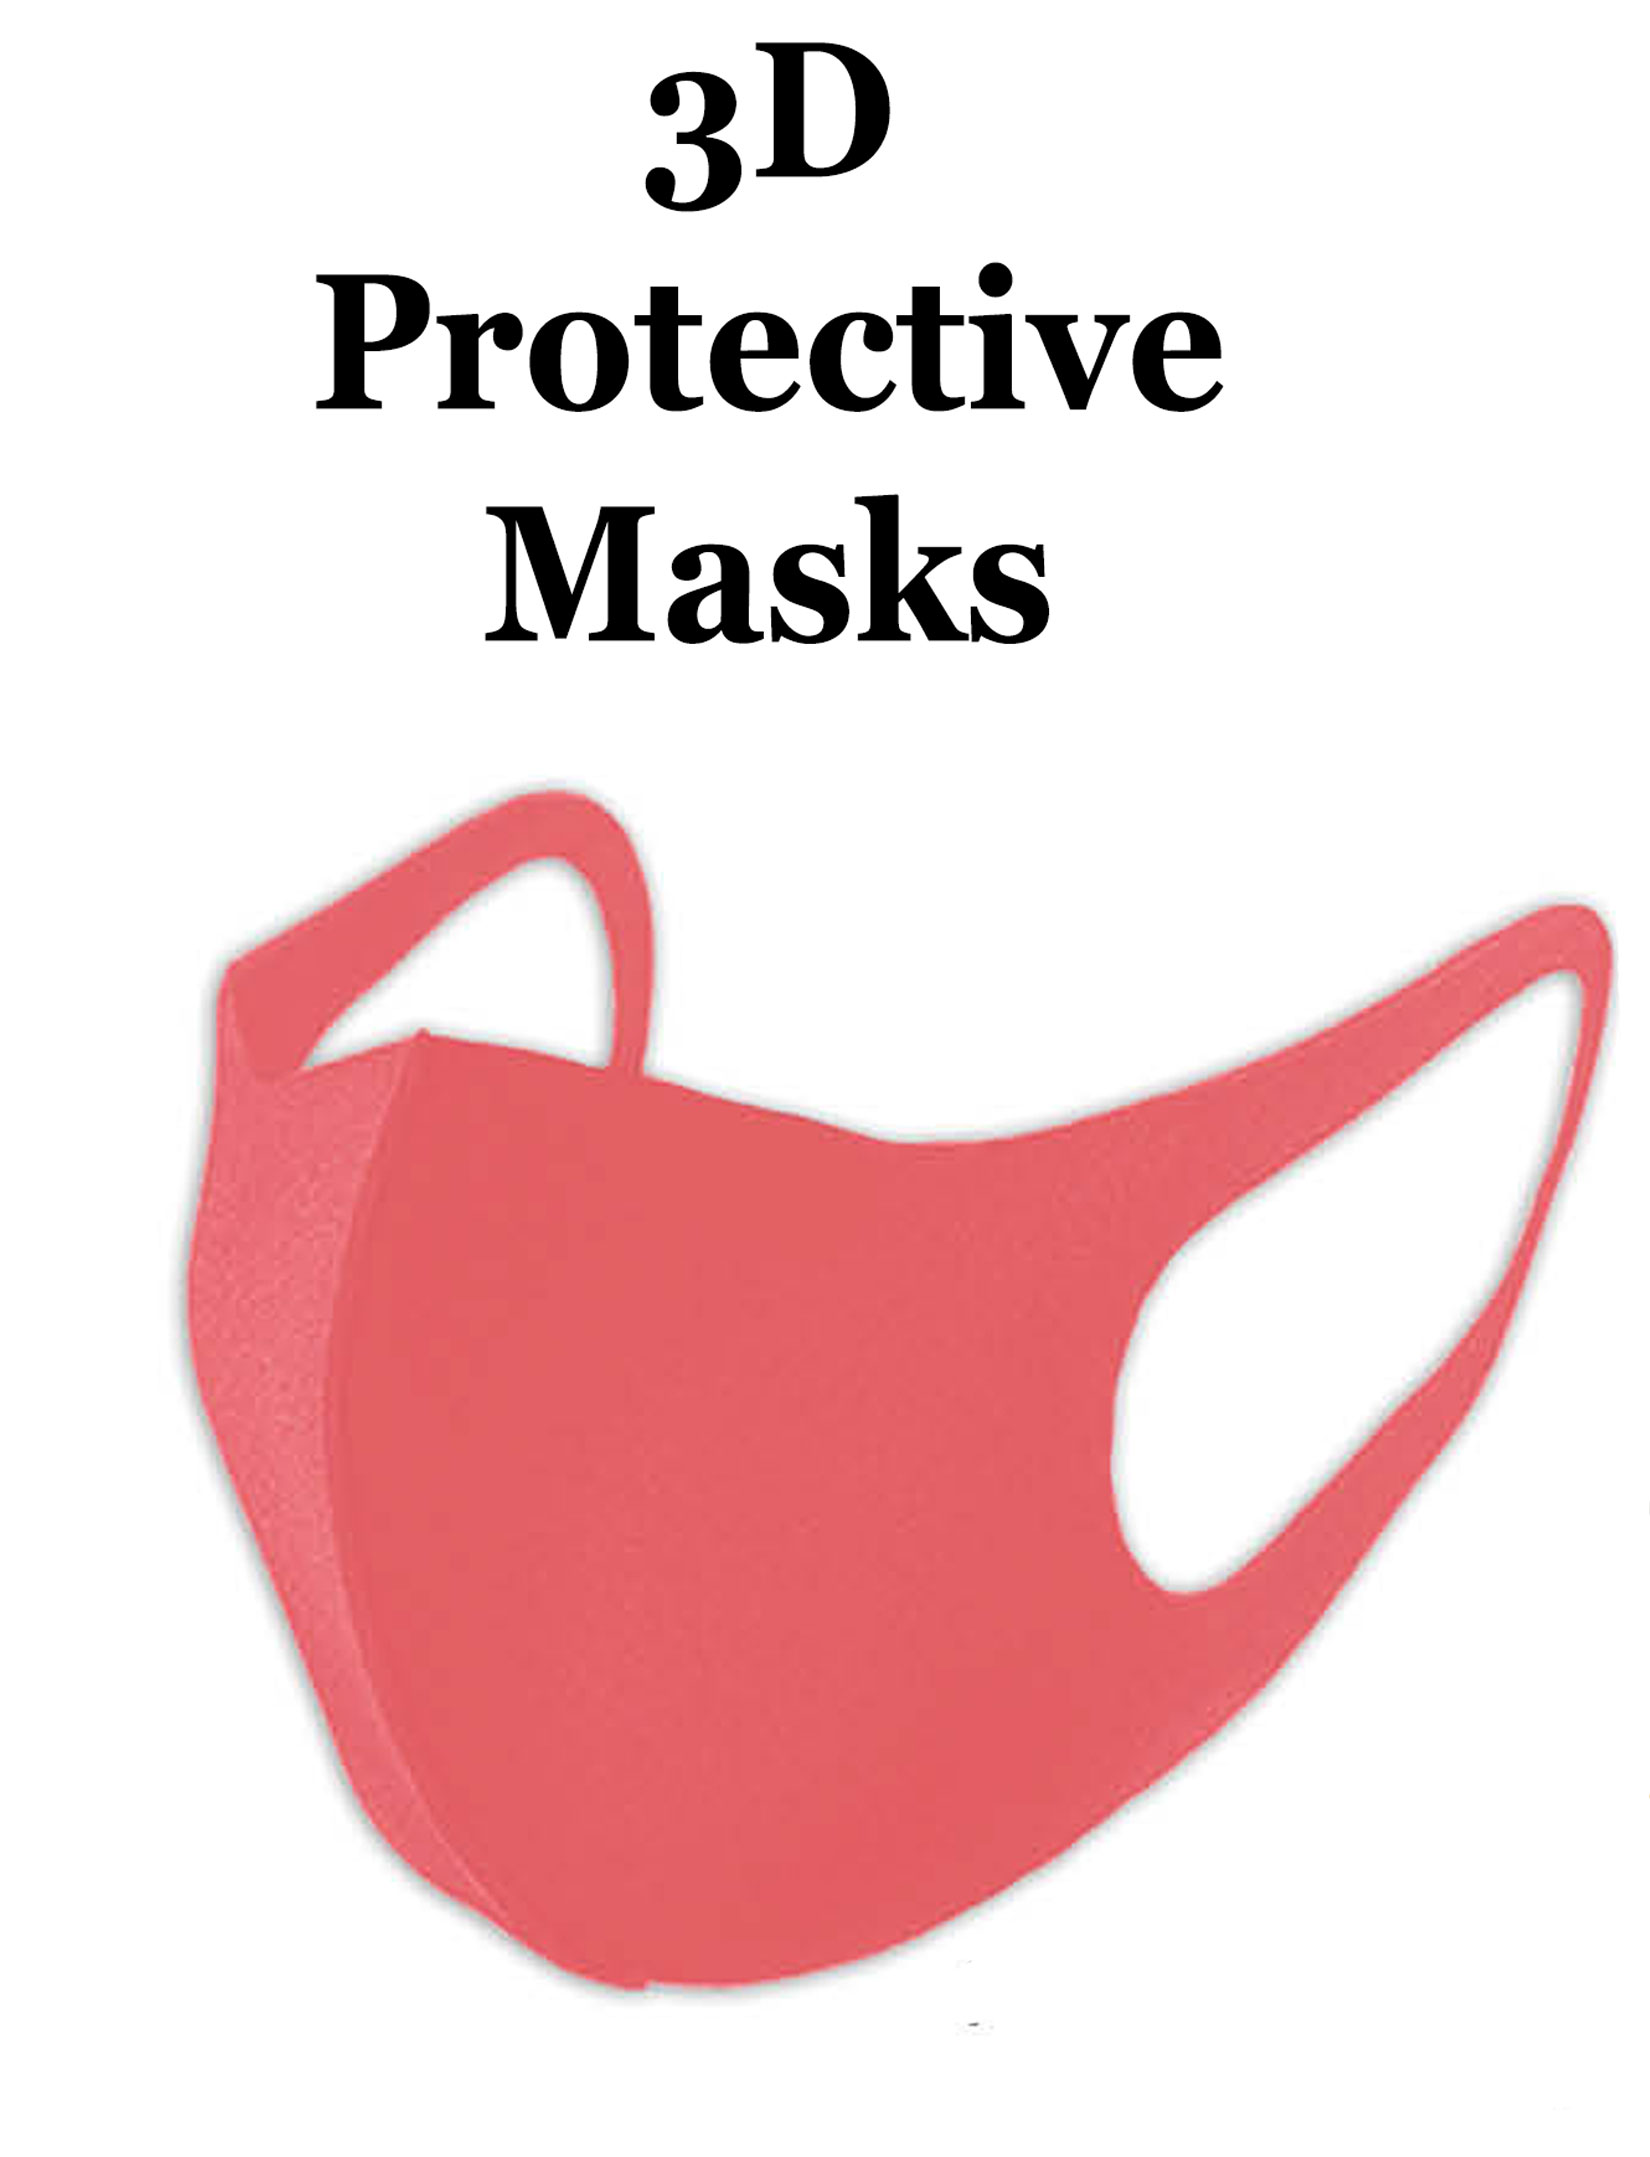 Protective Mask Laser Cut 3D Design